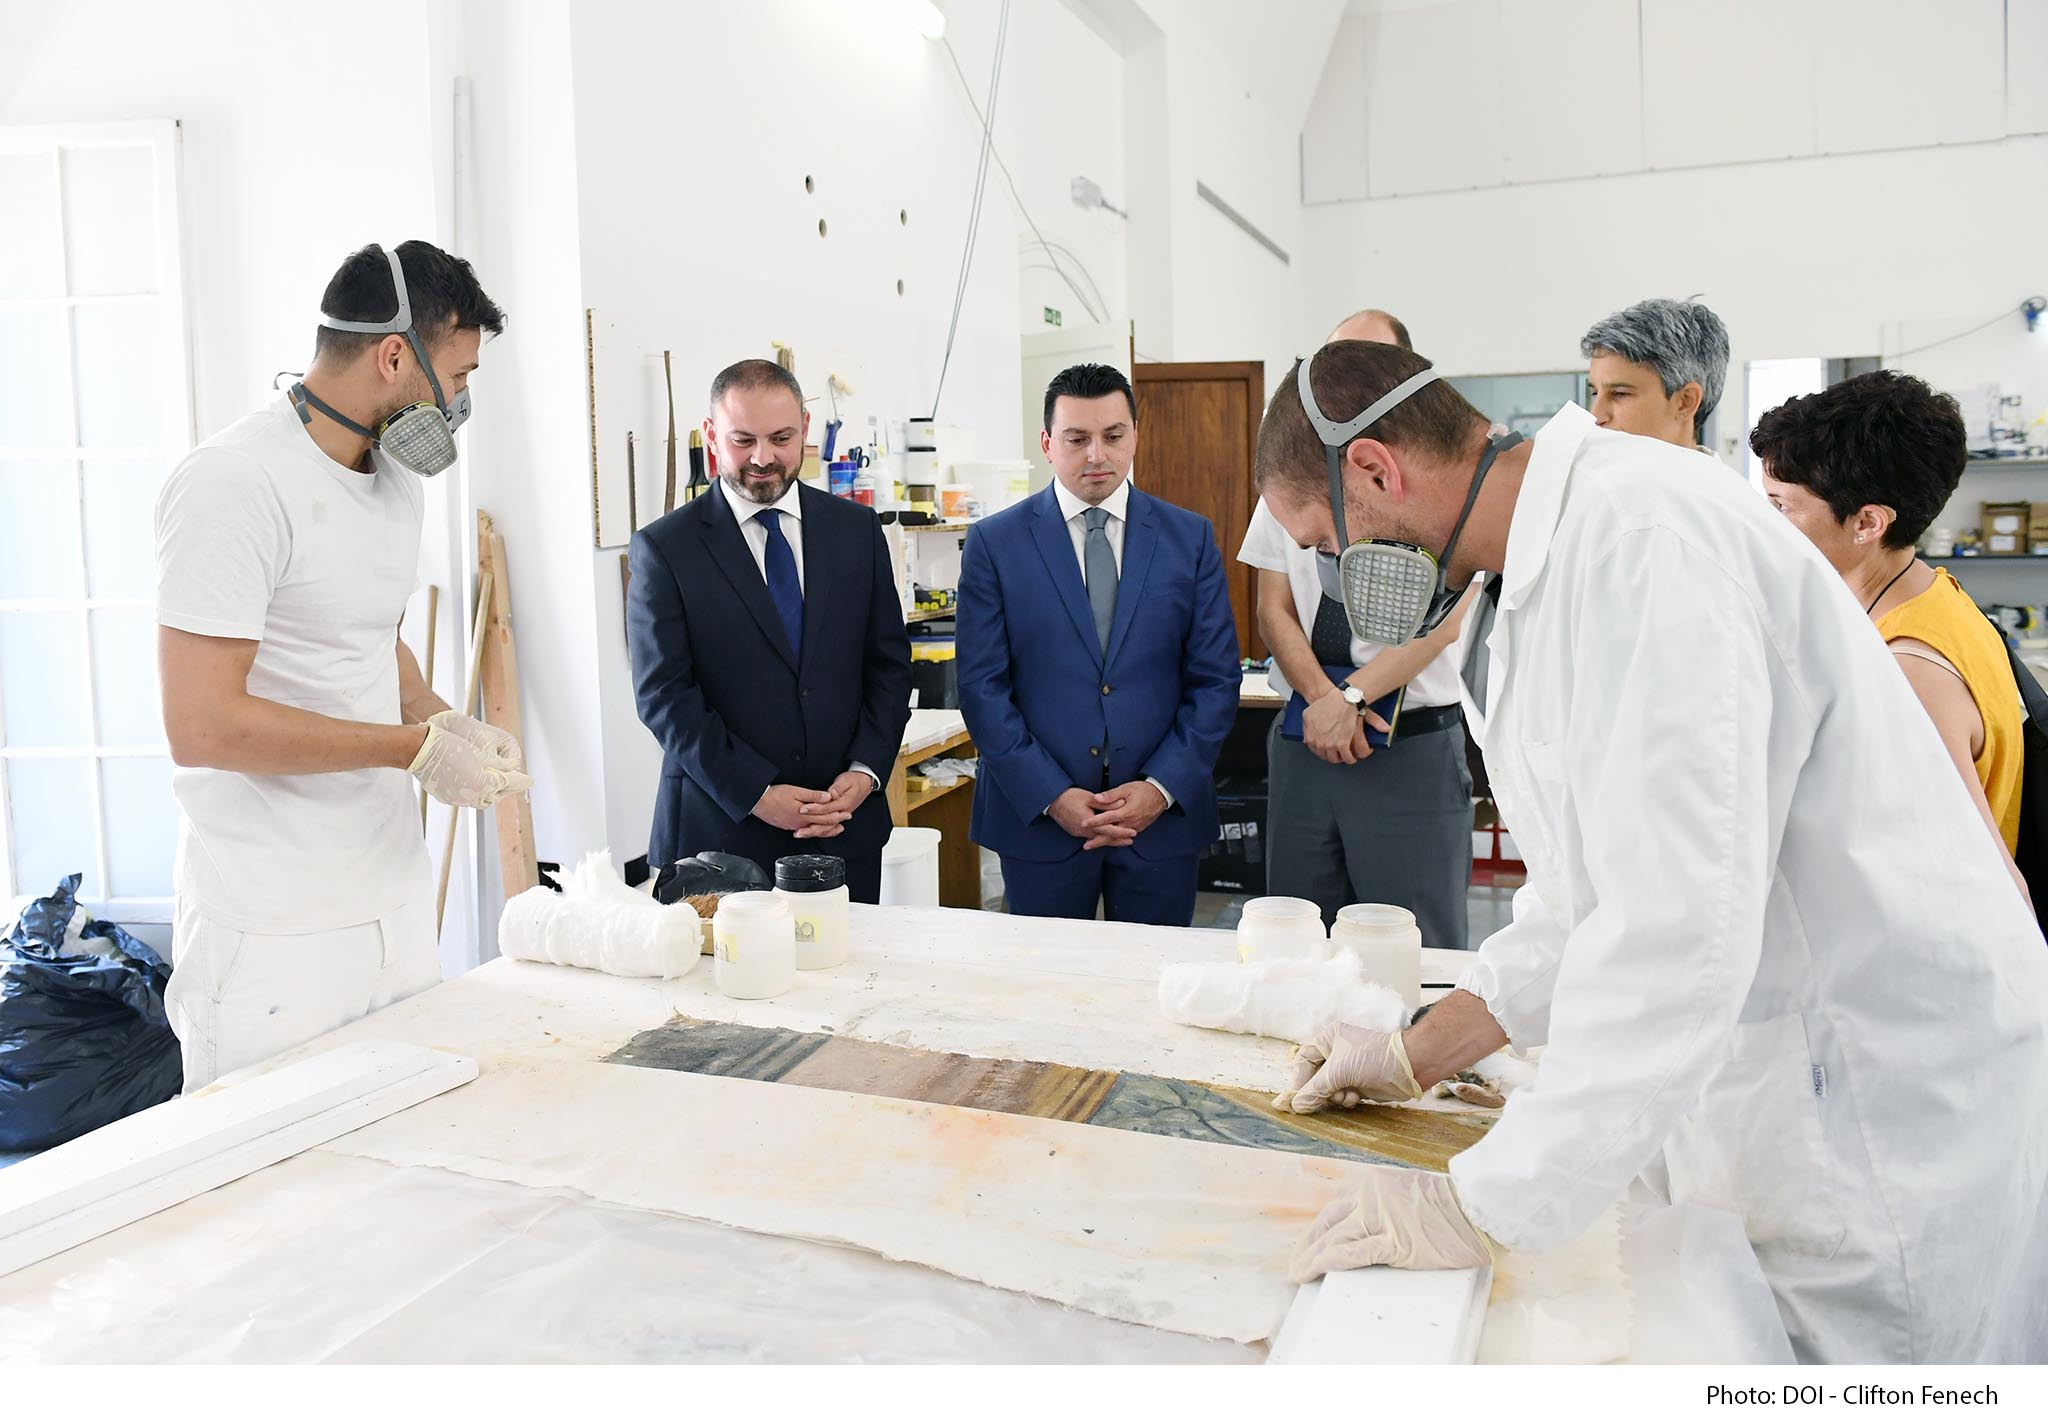 PRESS RELEASE BY THE MINISTRY FOR JUSTICE, CULTURE AND LOCAL GOVERNMENT AND THE PARLIAMENTARY SECRETARIAT FOR EUROPEAN FUNDS AND SOCIAL DIALOGUE: Restoration works at the Grand Master's Palace moving ahead